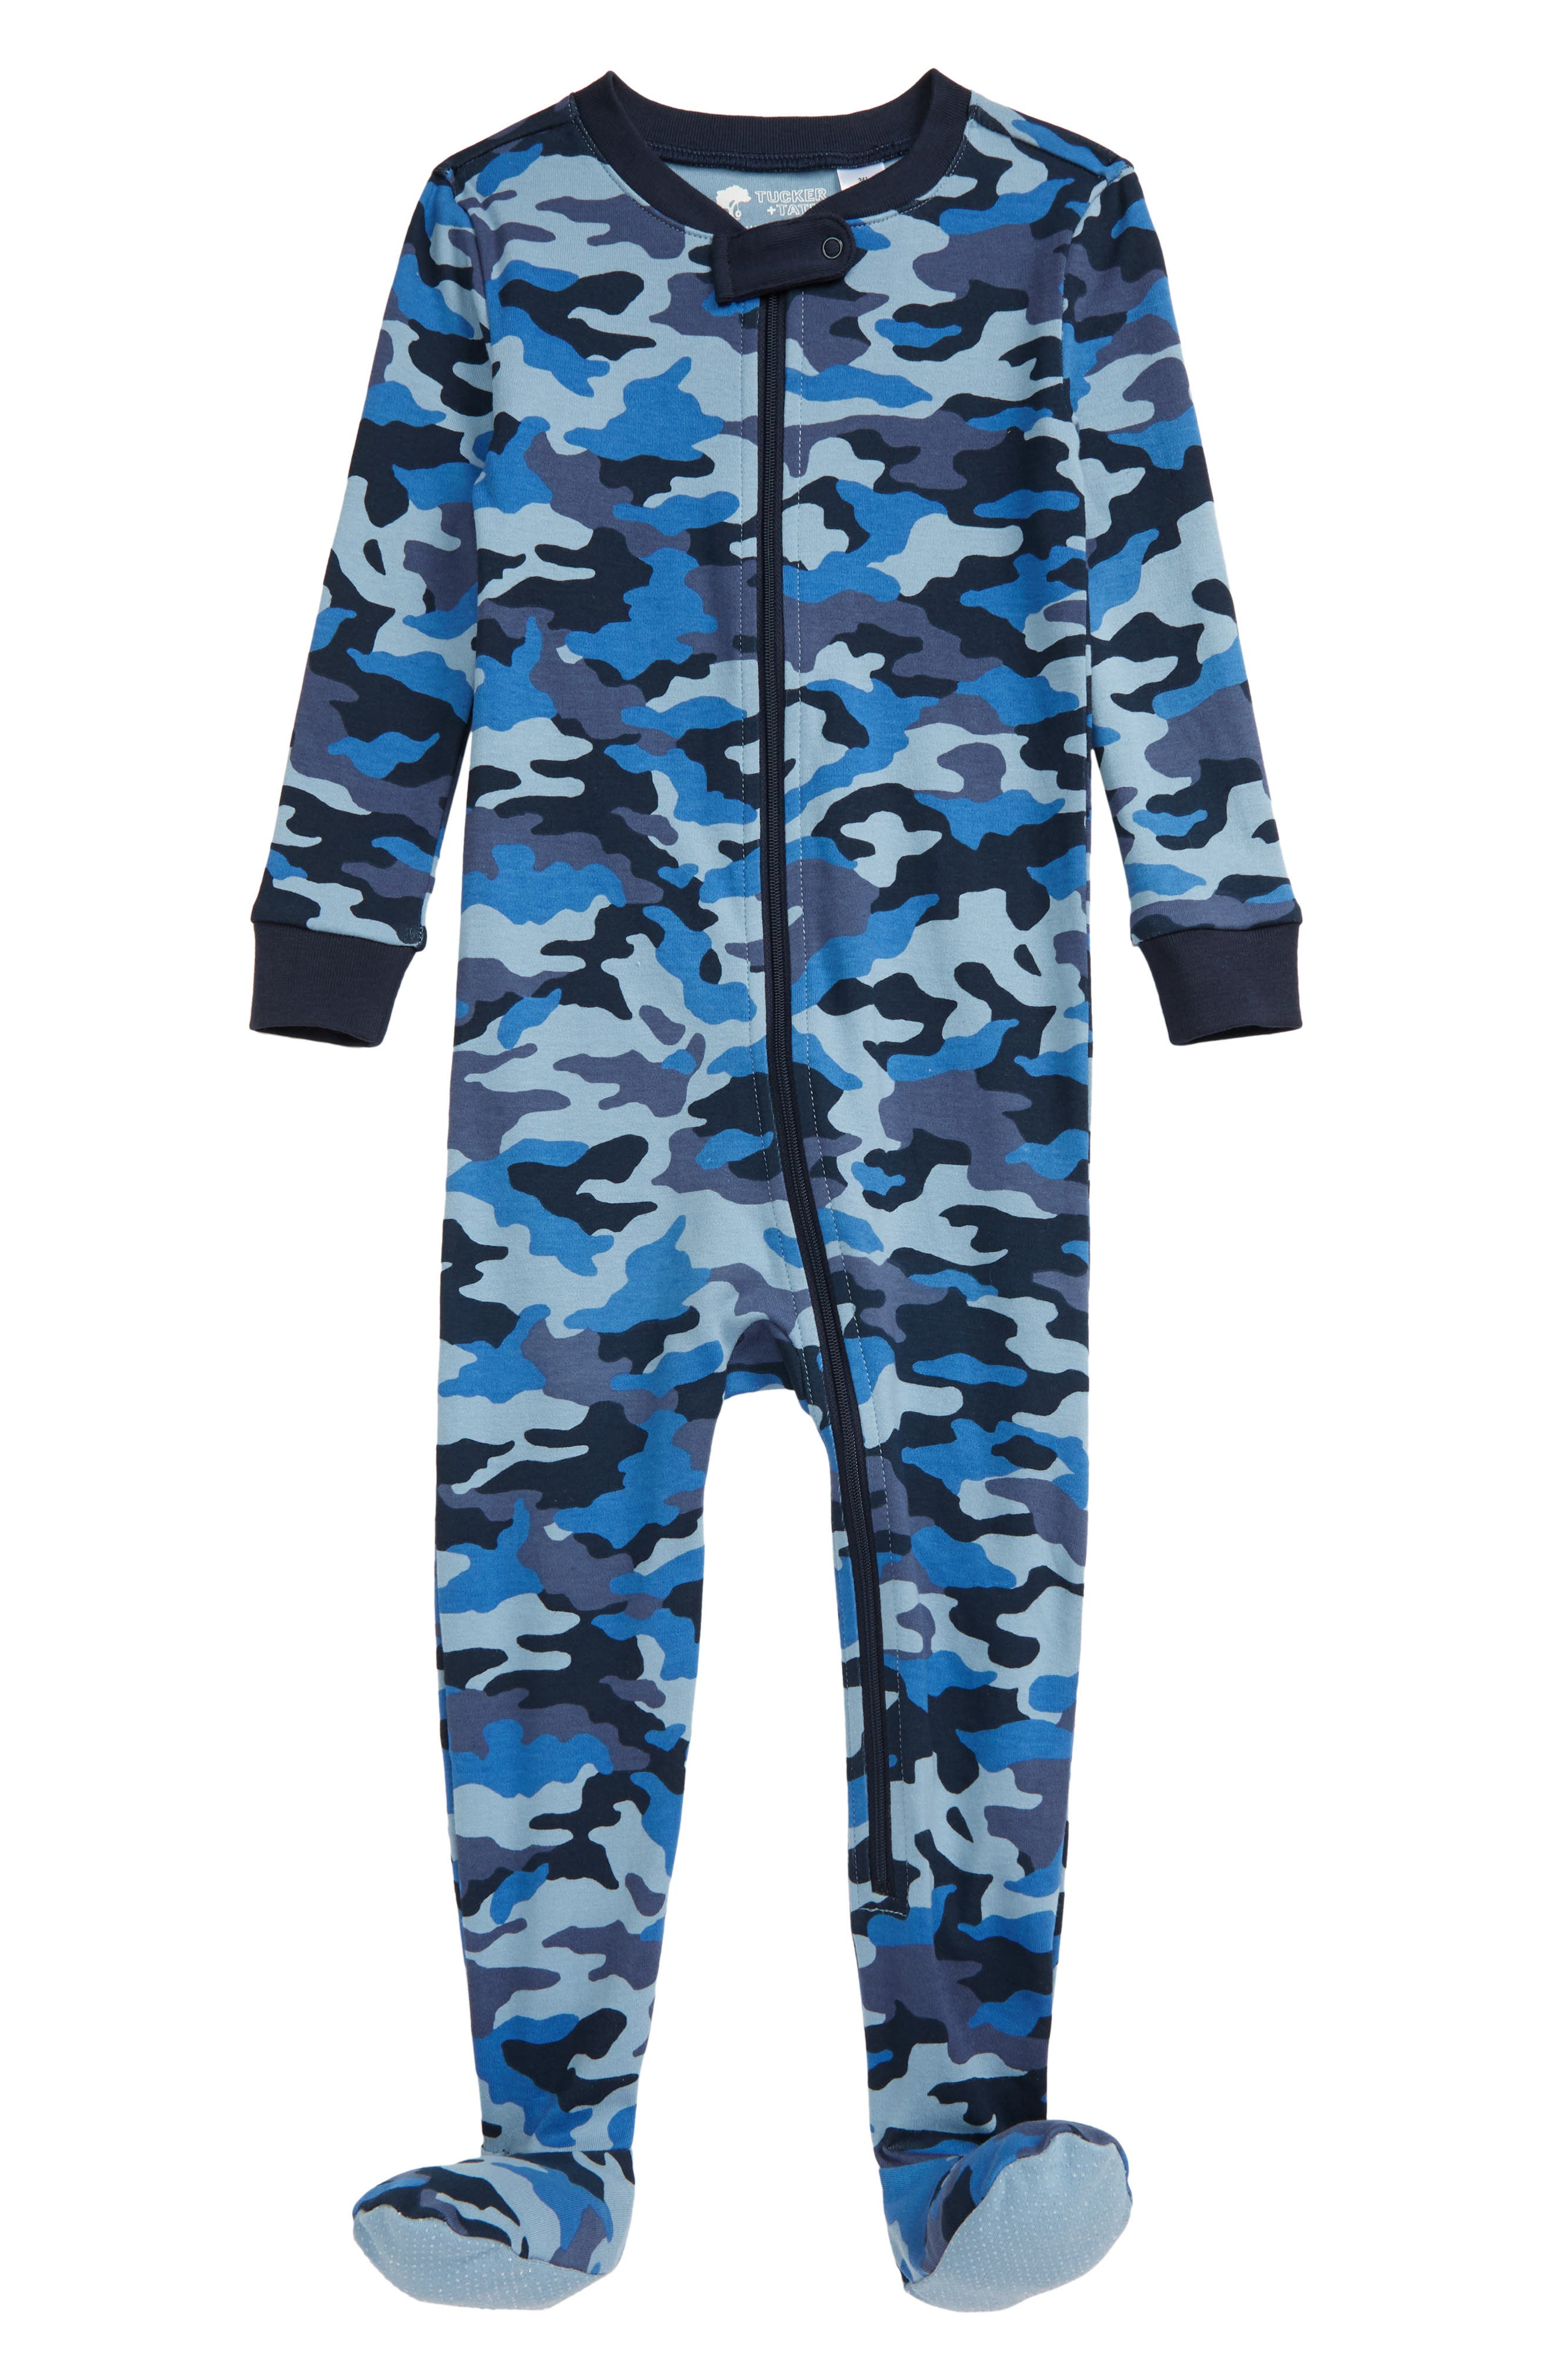 Keep your little one comfy and sleeping soundly in a snug-fitting footie that zips down the front for easy changing. Style Name: Tucker + Tate Print Fitted One-Piece Pajamas (Baby). Style Number: 5932309. Available in stores.